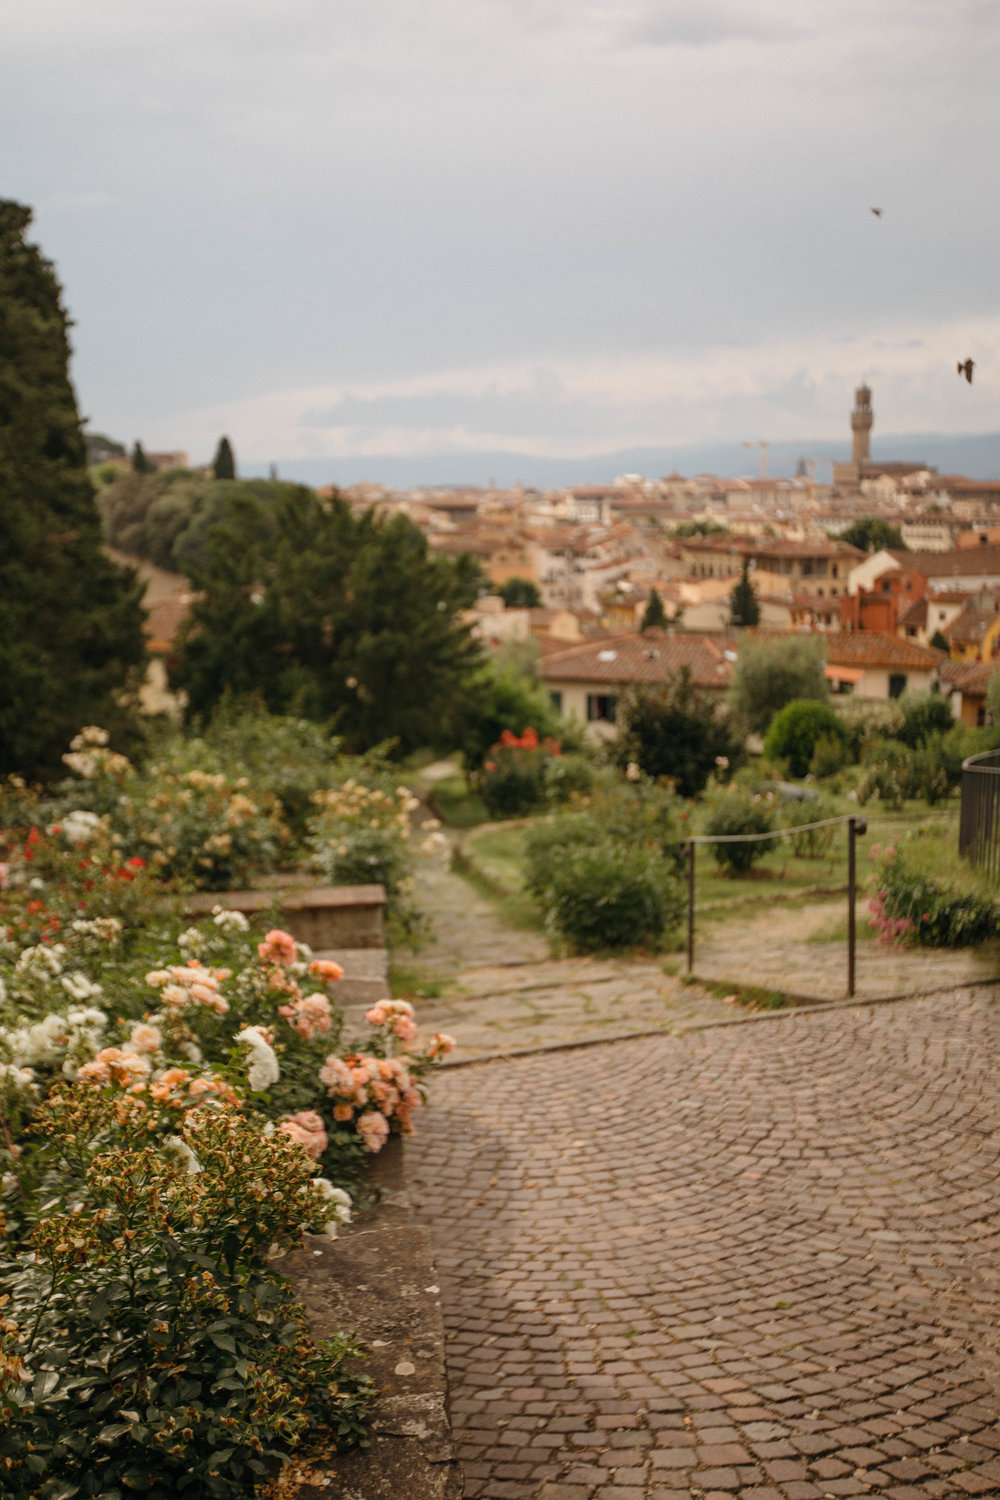 Rose Gardens in Florence, Italy.